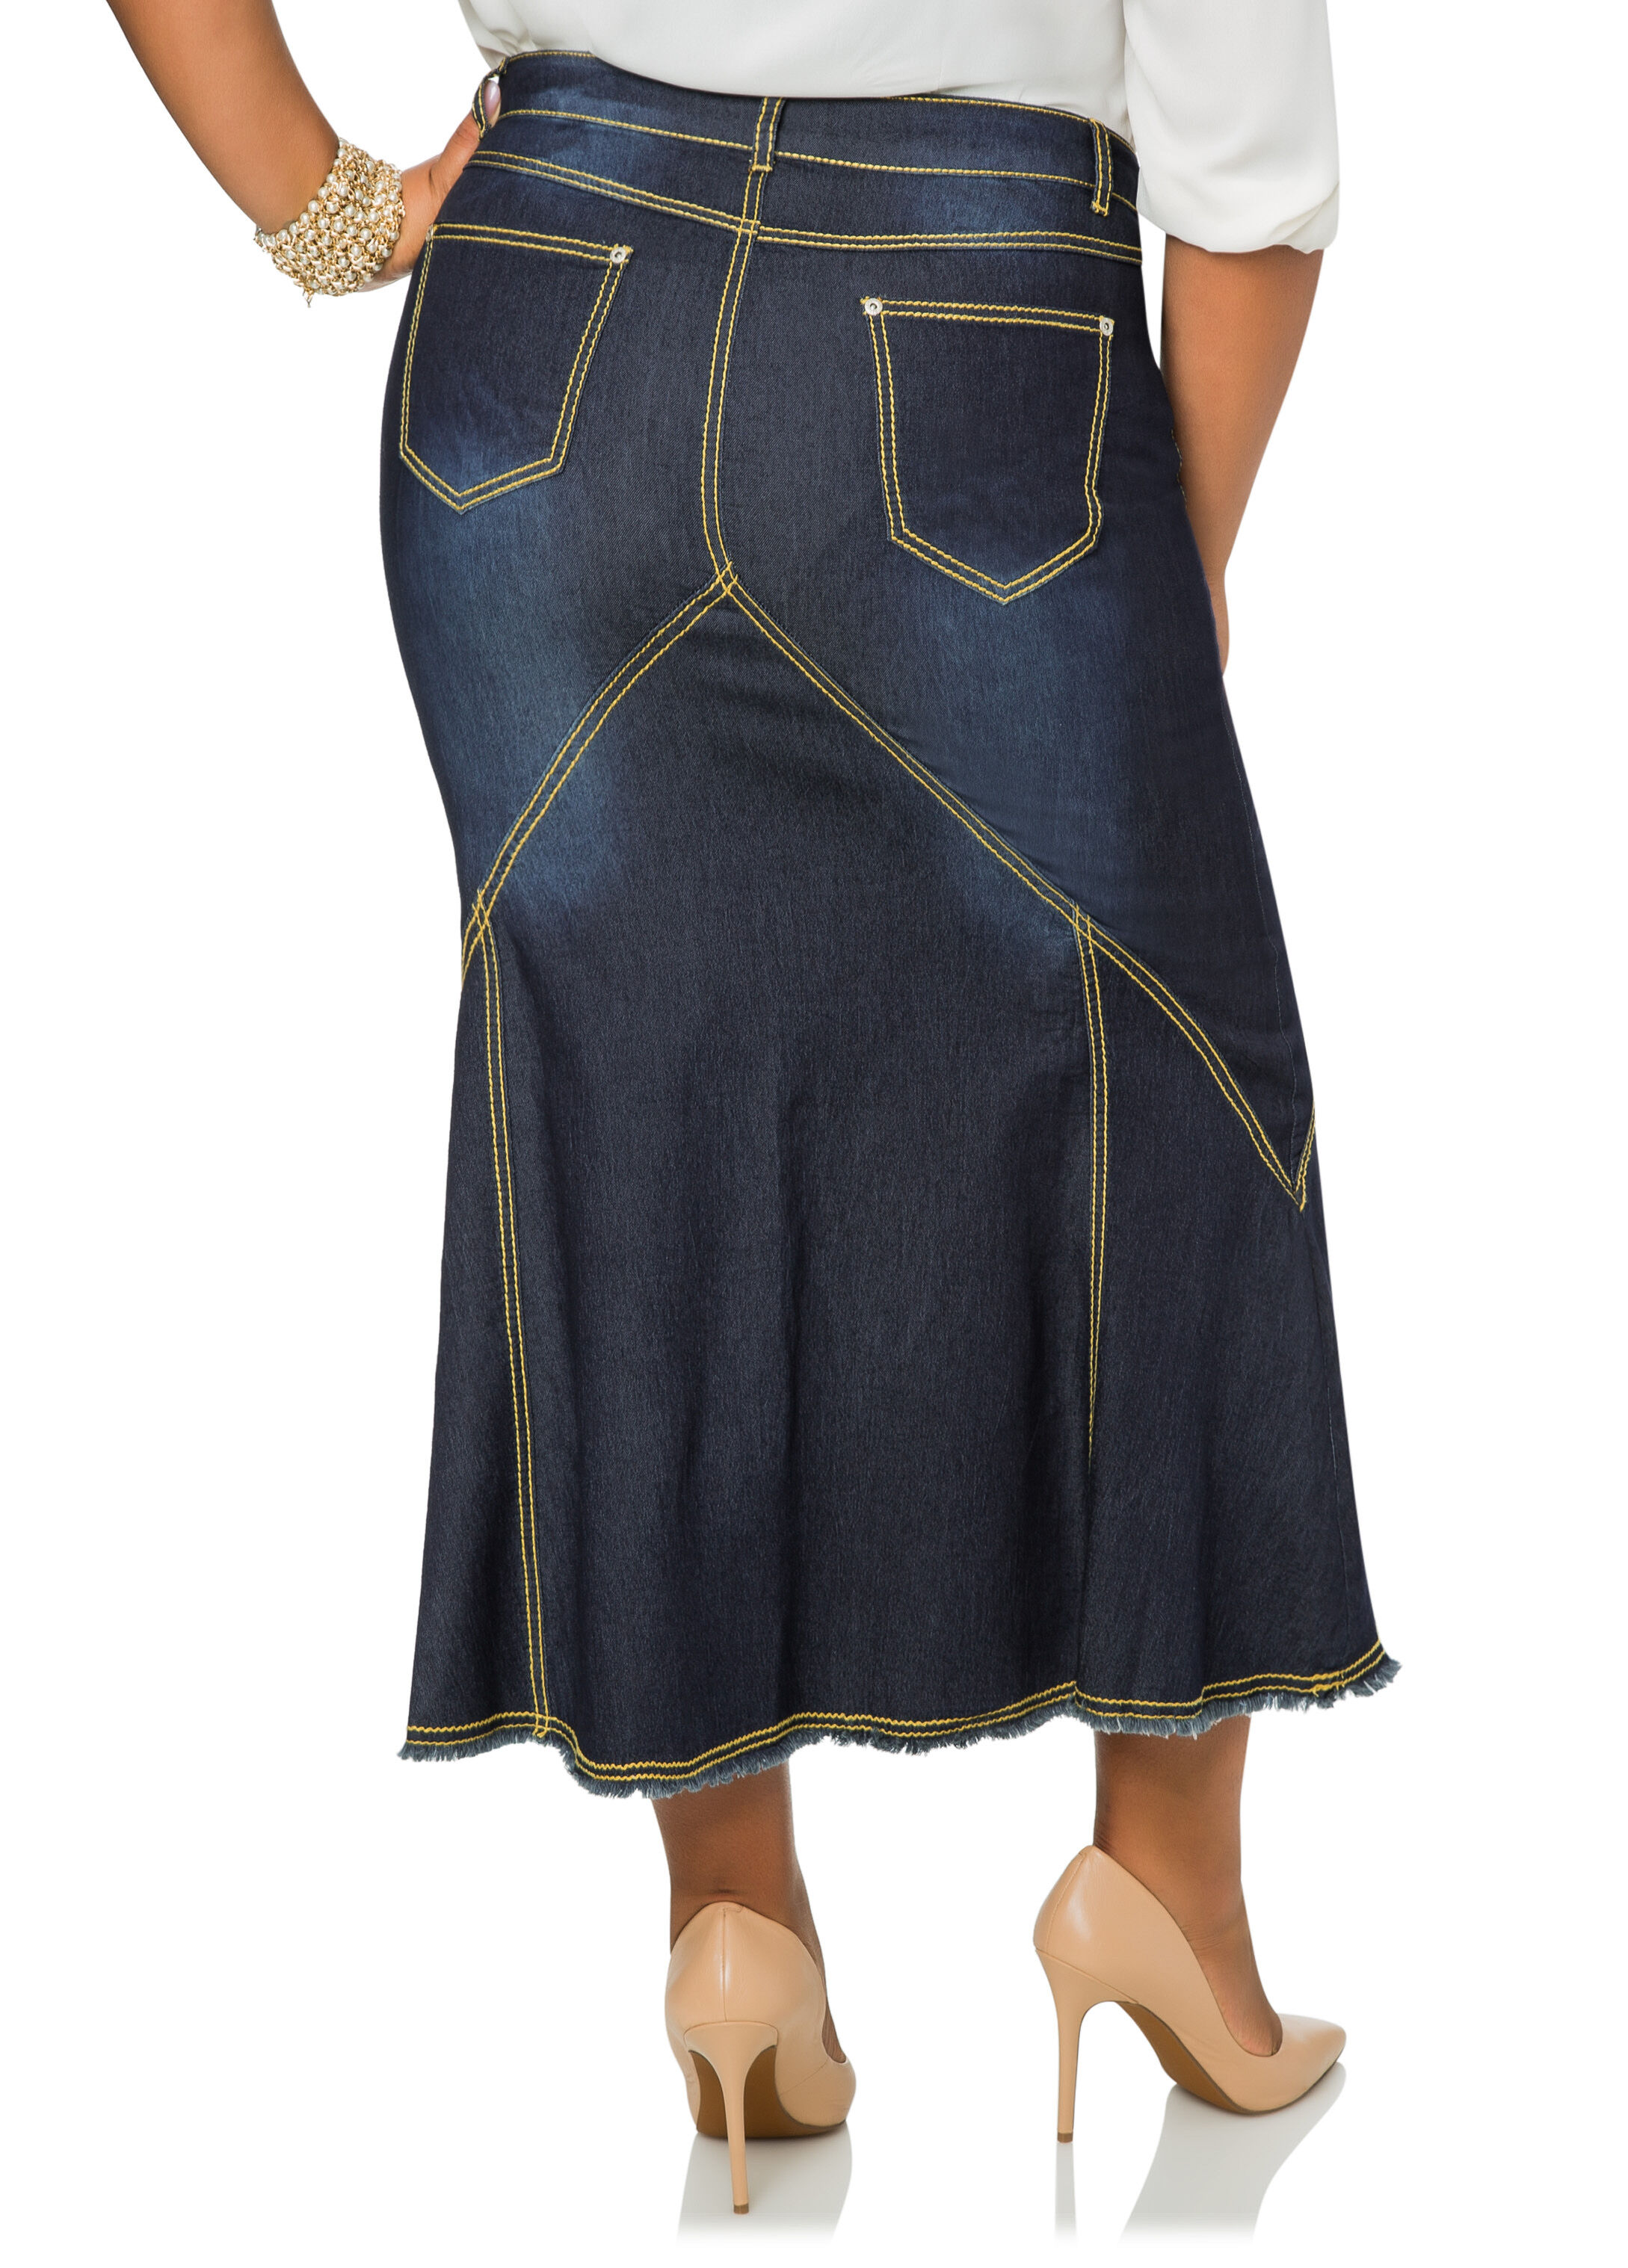 Plus Size Long Jean Skirts IvLQGuV6